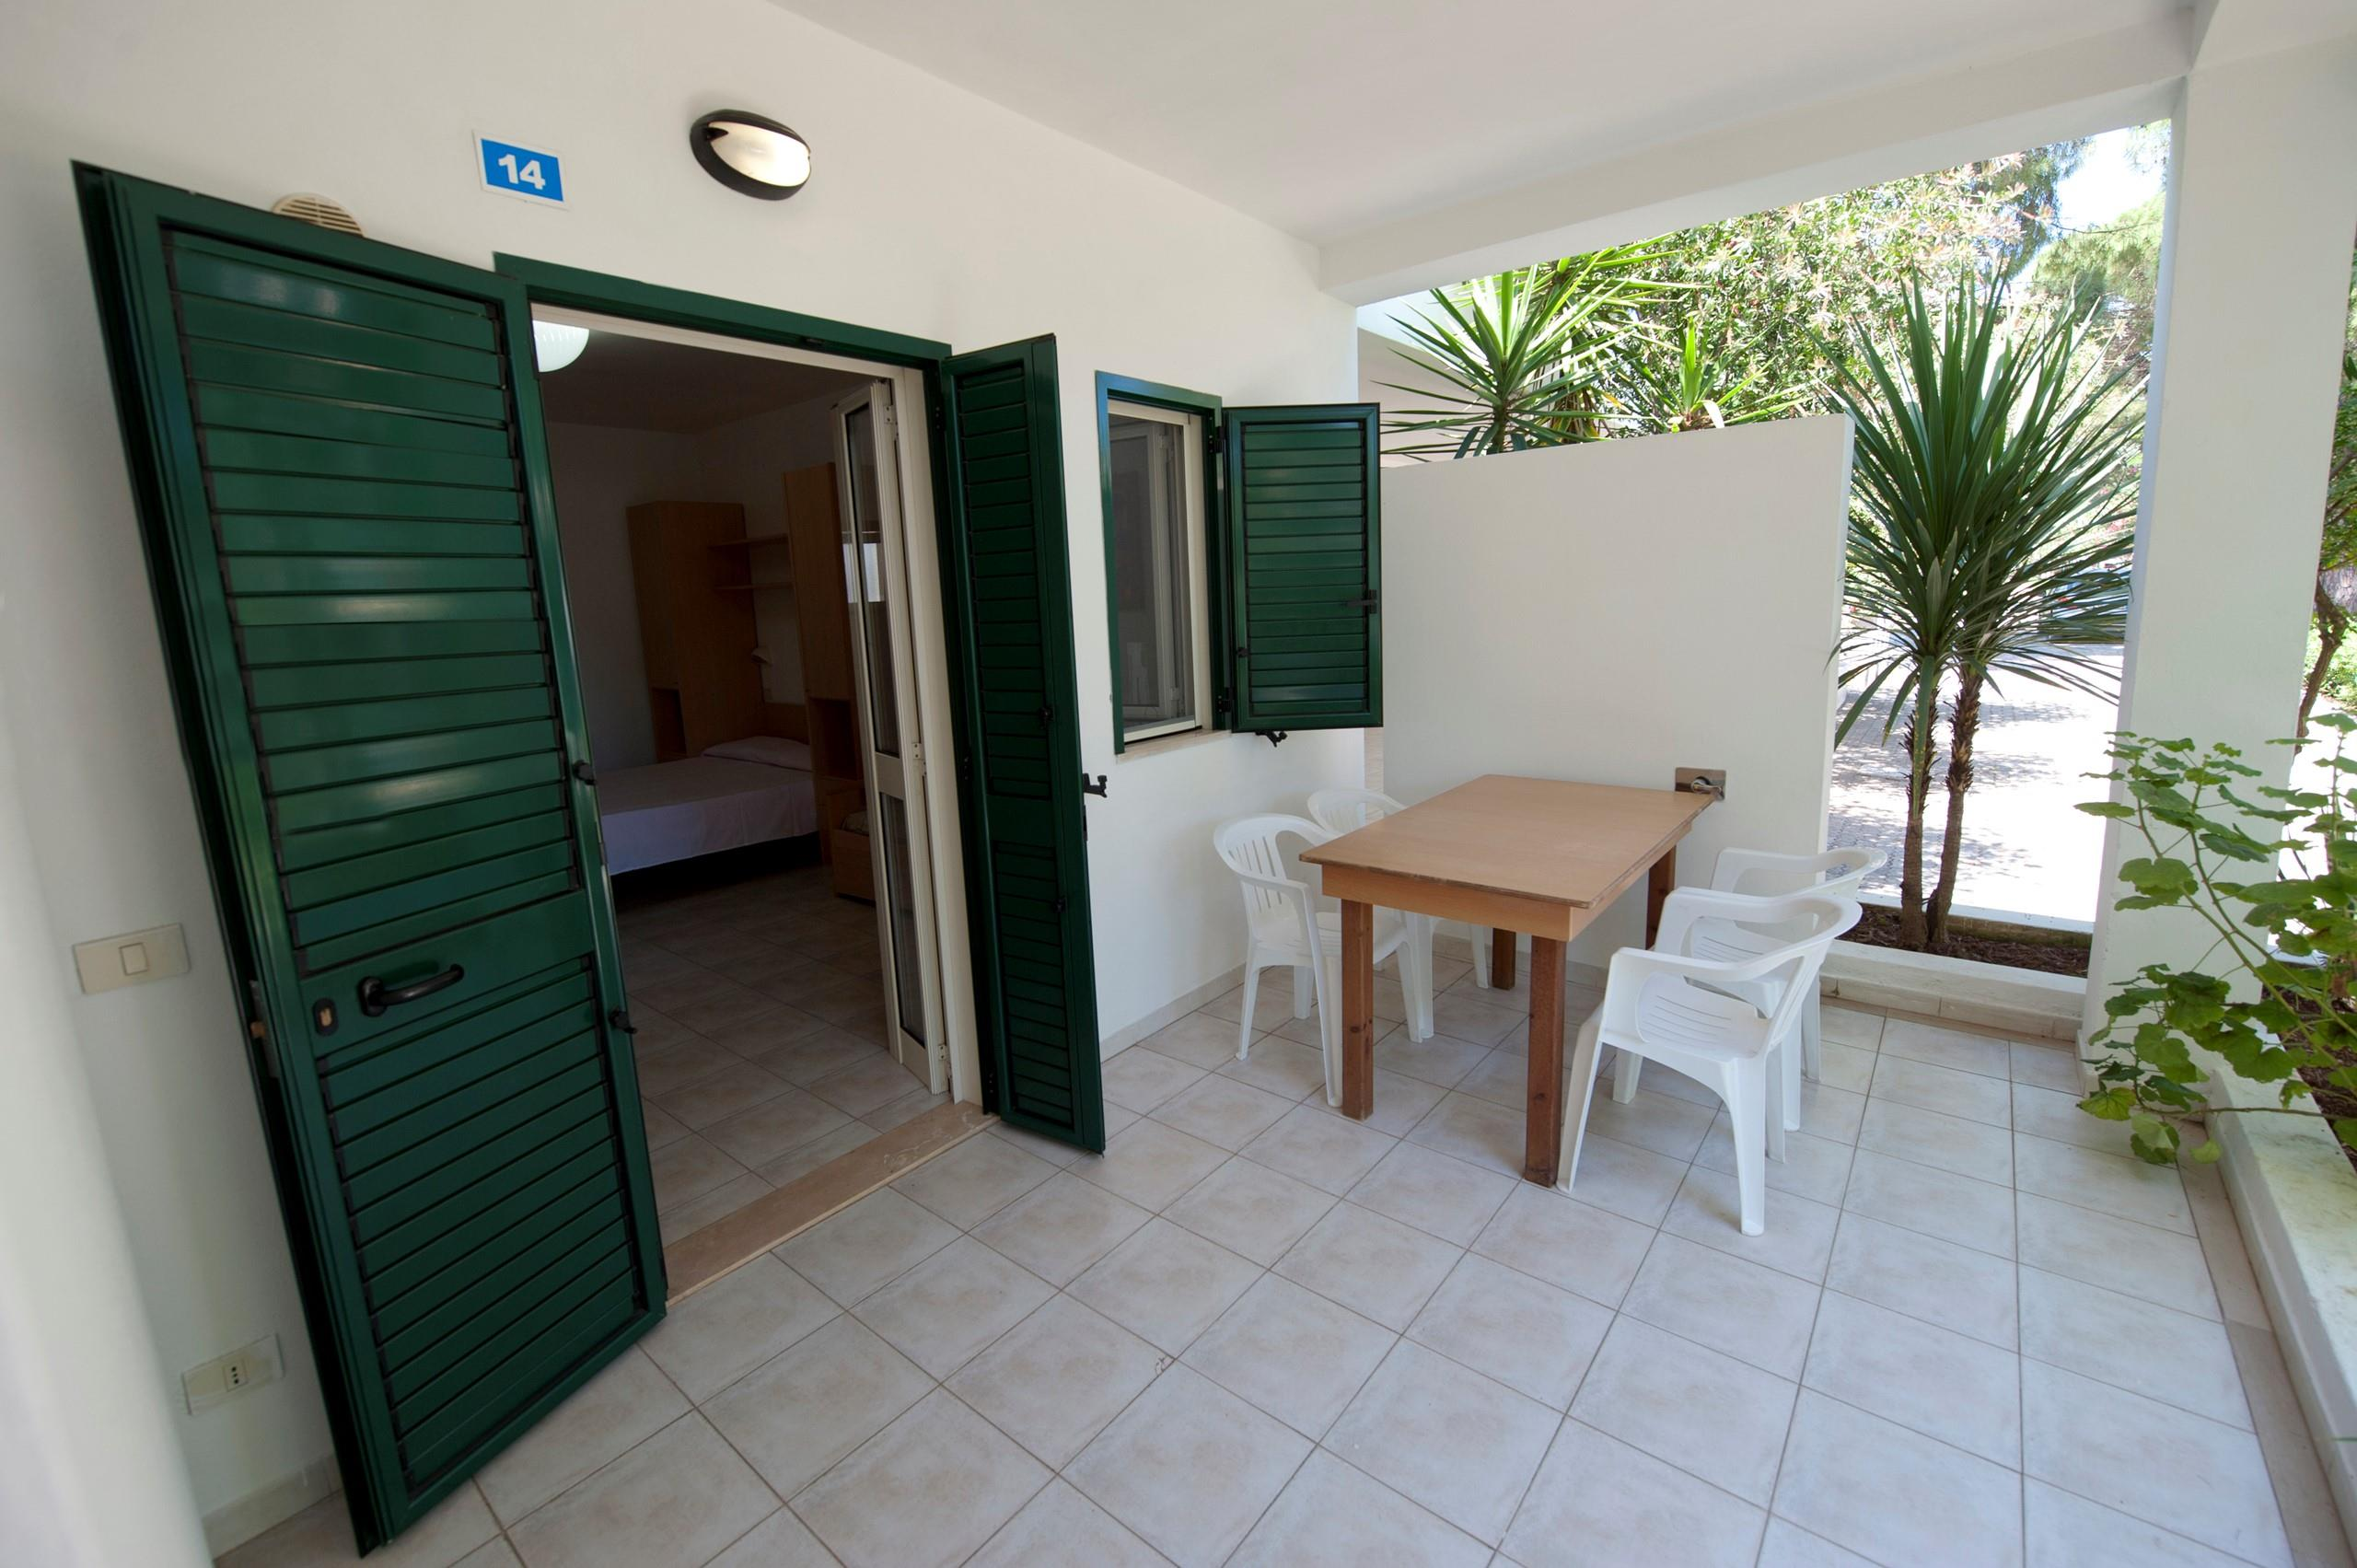 Location - Bungalow 'Giada' Une Pièce - Camping Le Diomedee